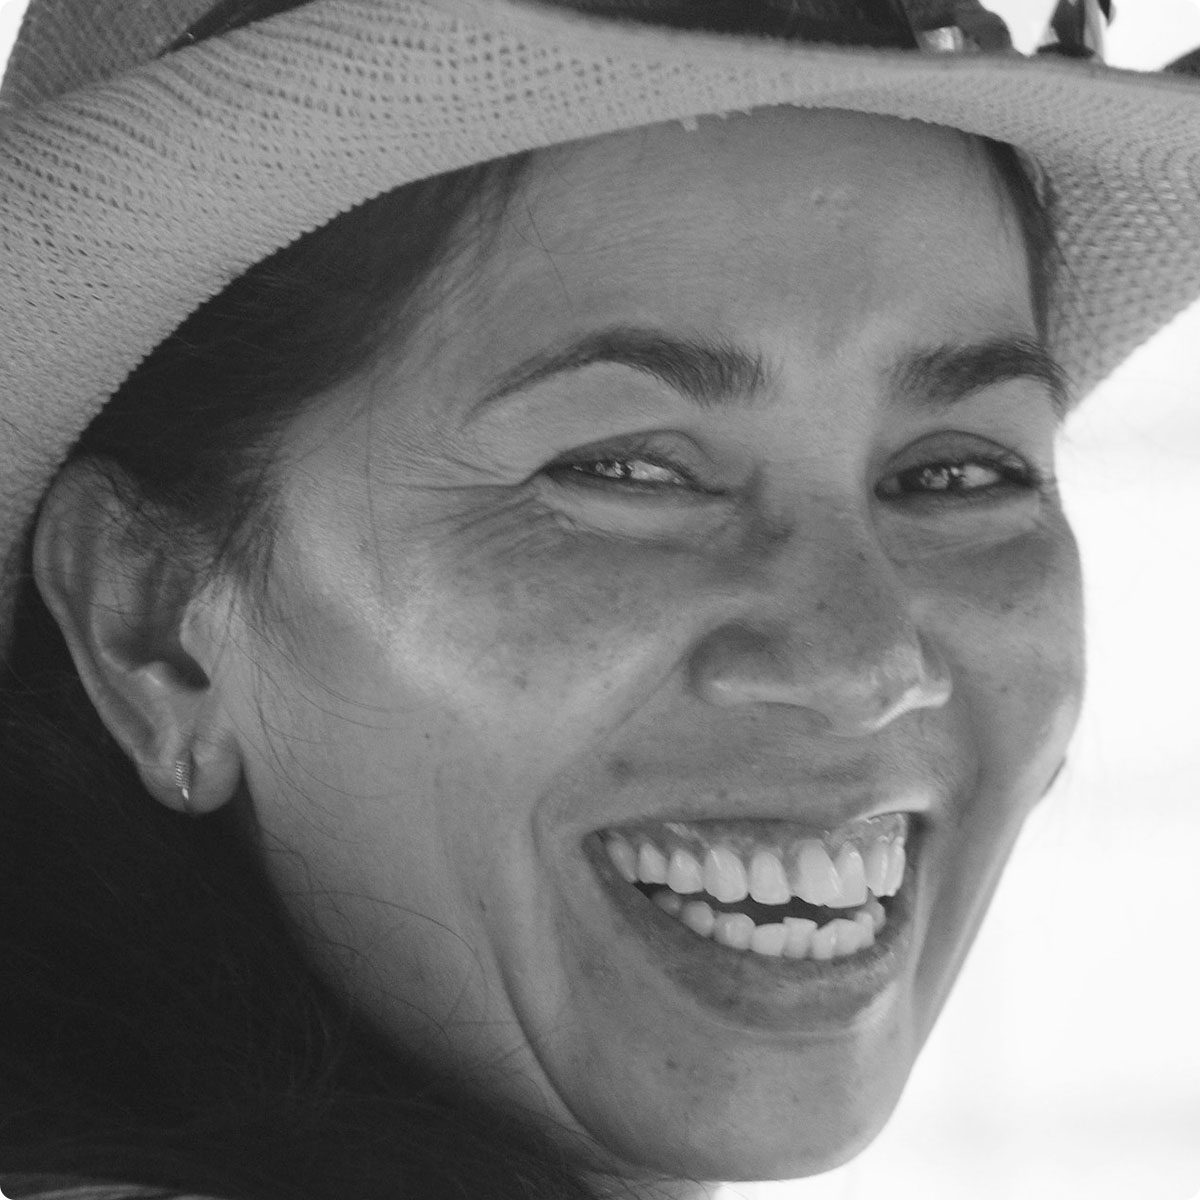 https://www.justicemaine.org/wp-content/uploads/bw-pics-laughing-cowgirl.jpg